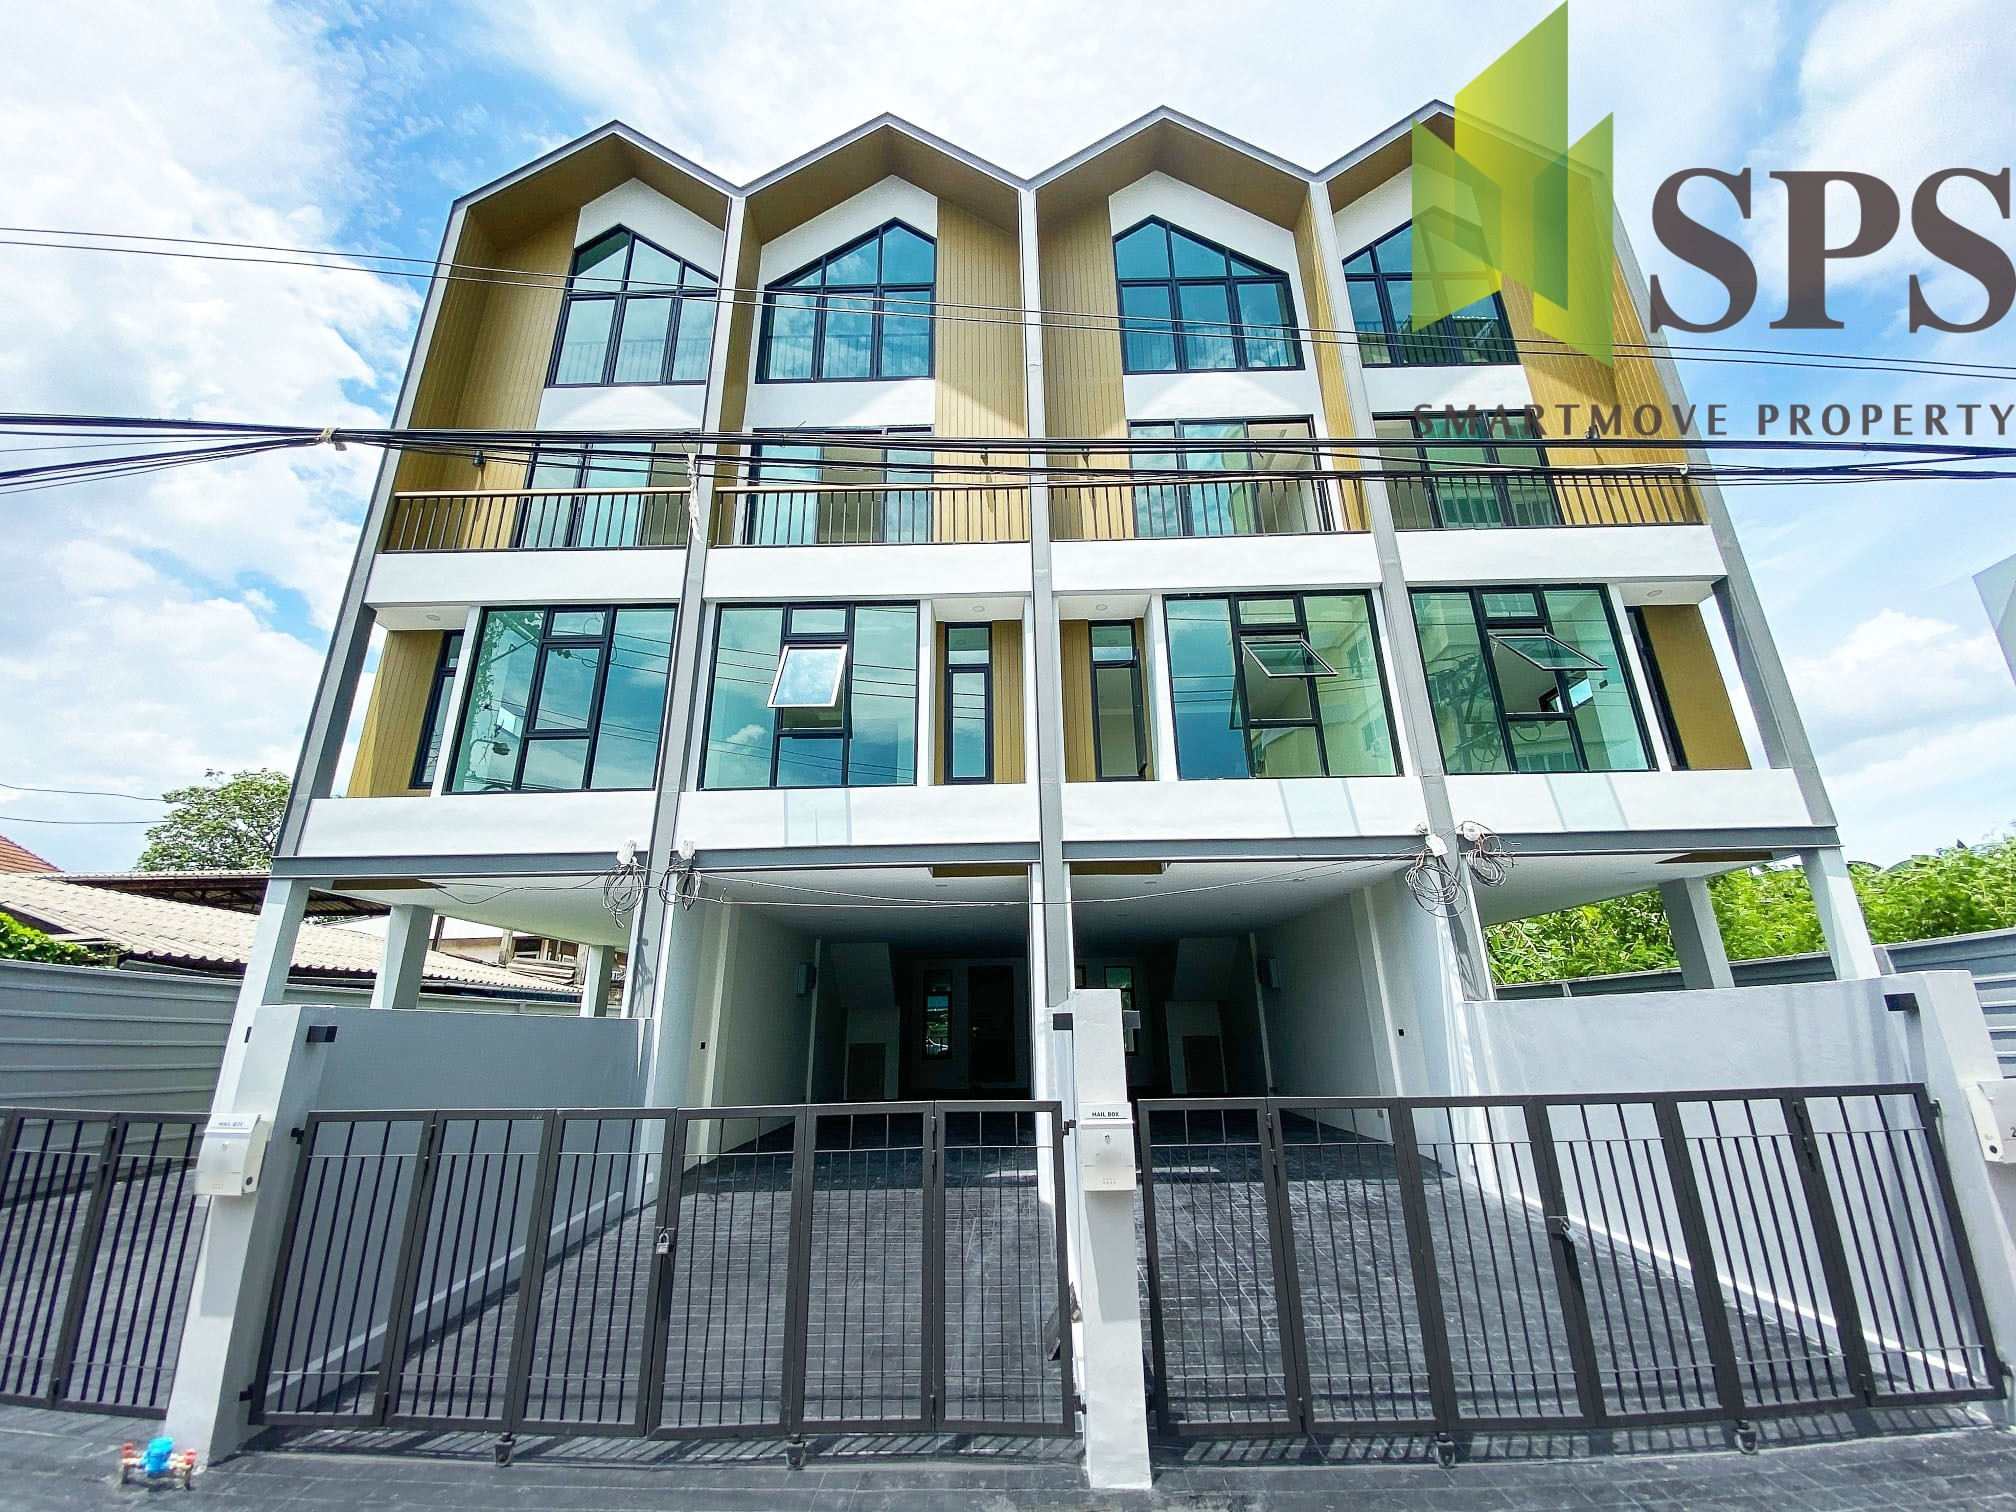 Home Office Sukhumvit 101/1 (SPS-GO490) Last unit